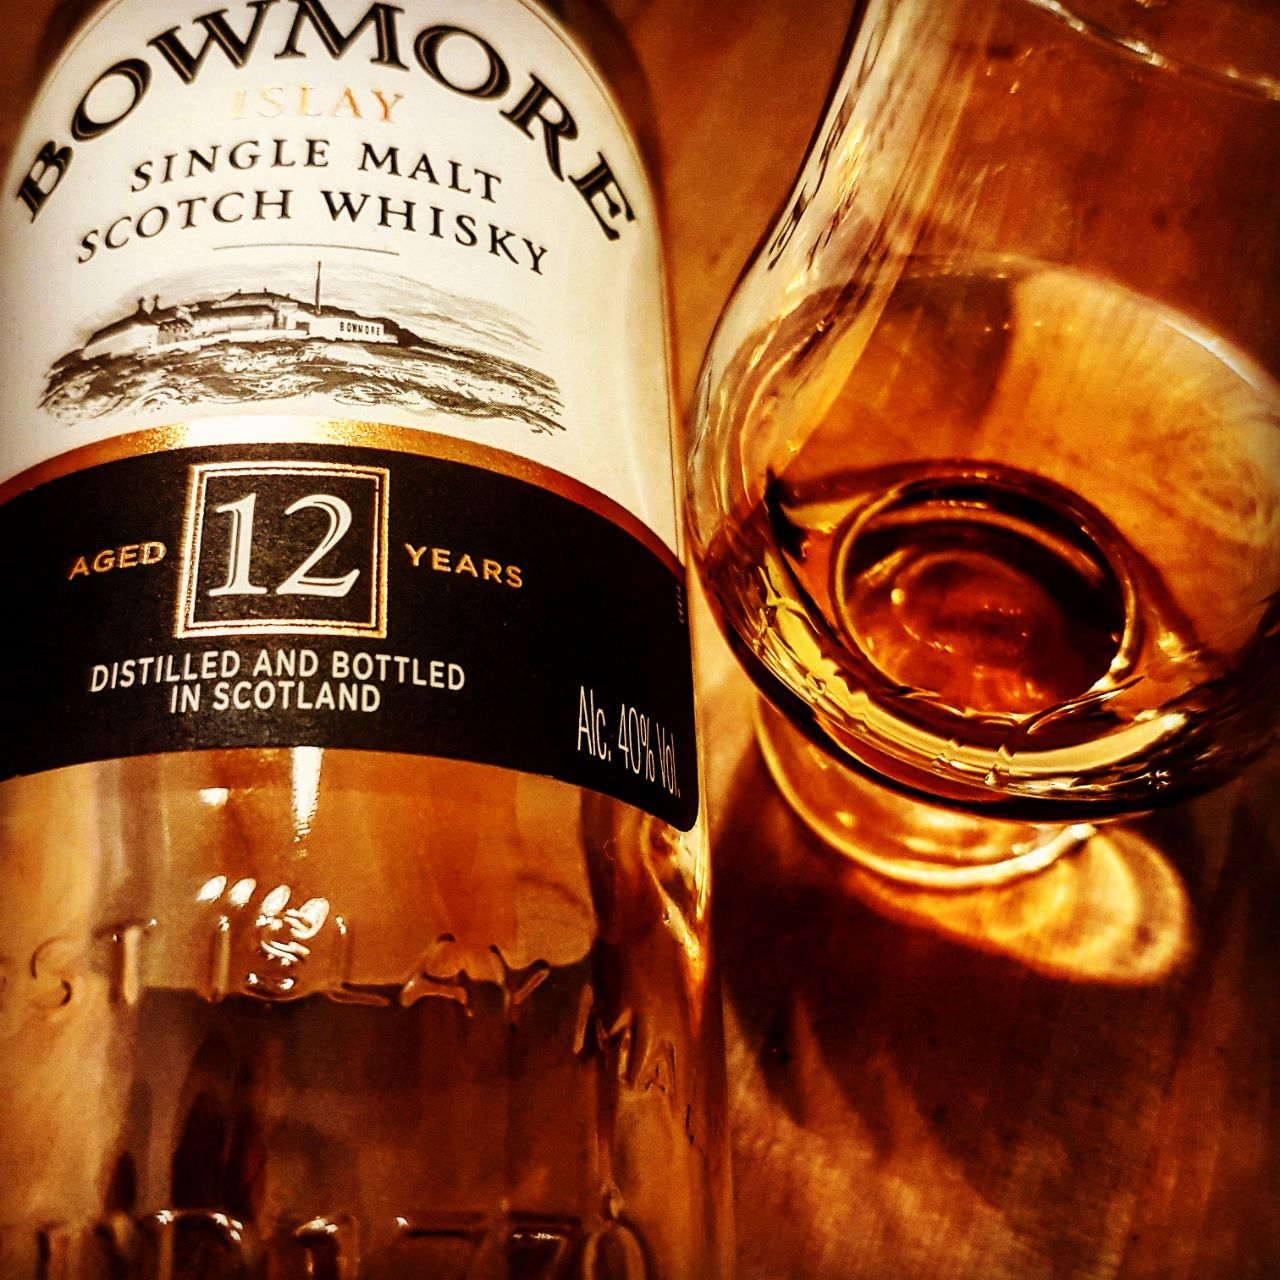 Bowmore 12 Jahre Islay Single Malt Scotch Whisky